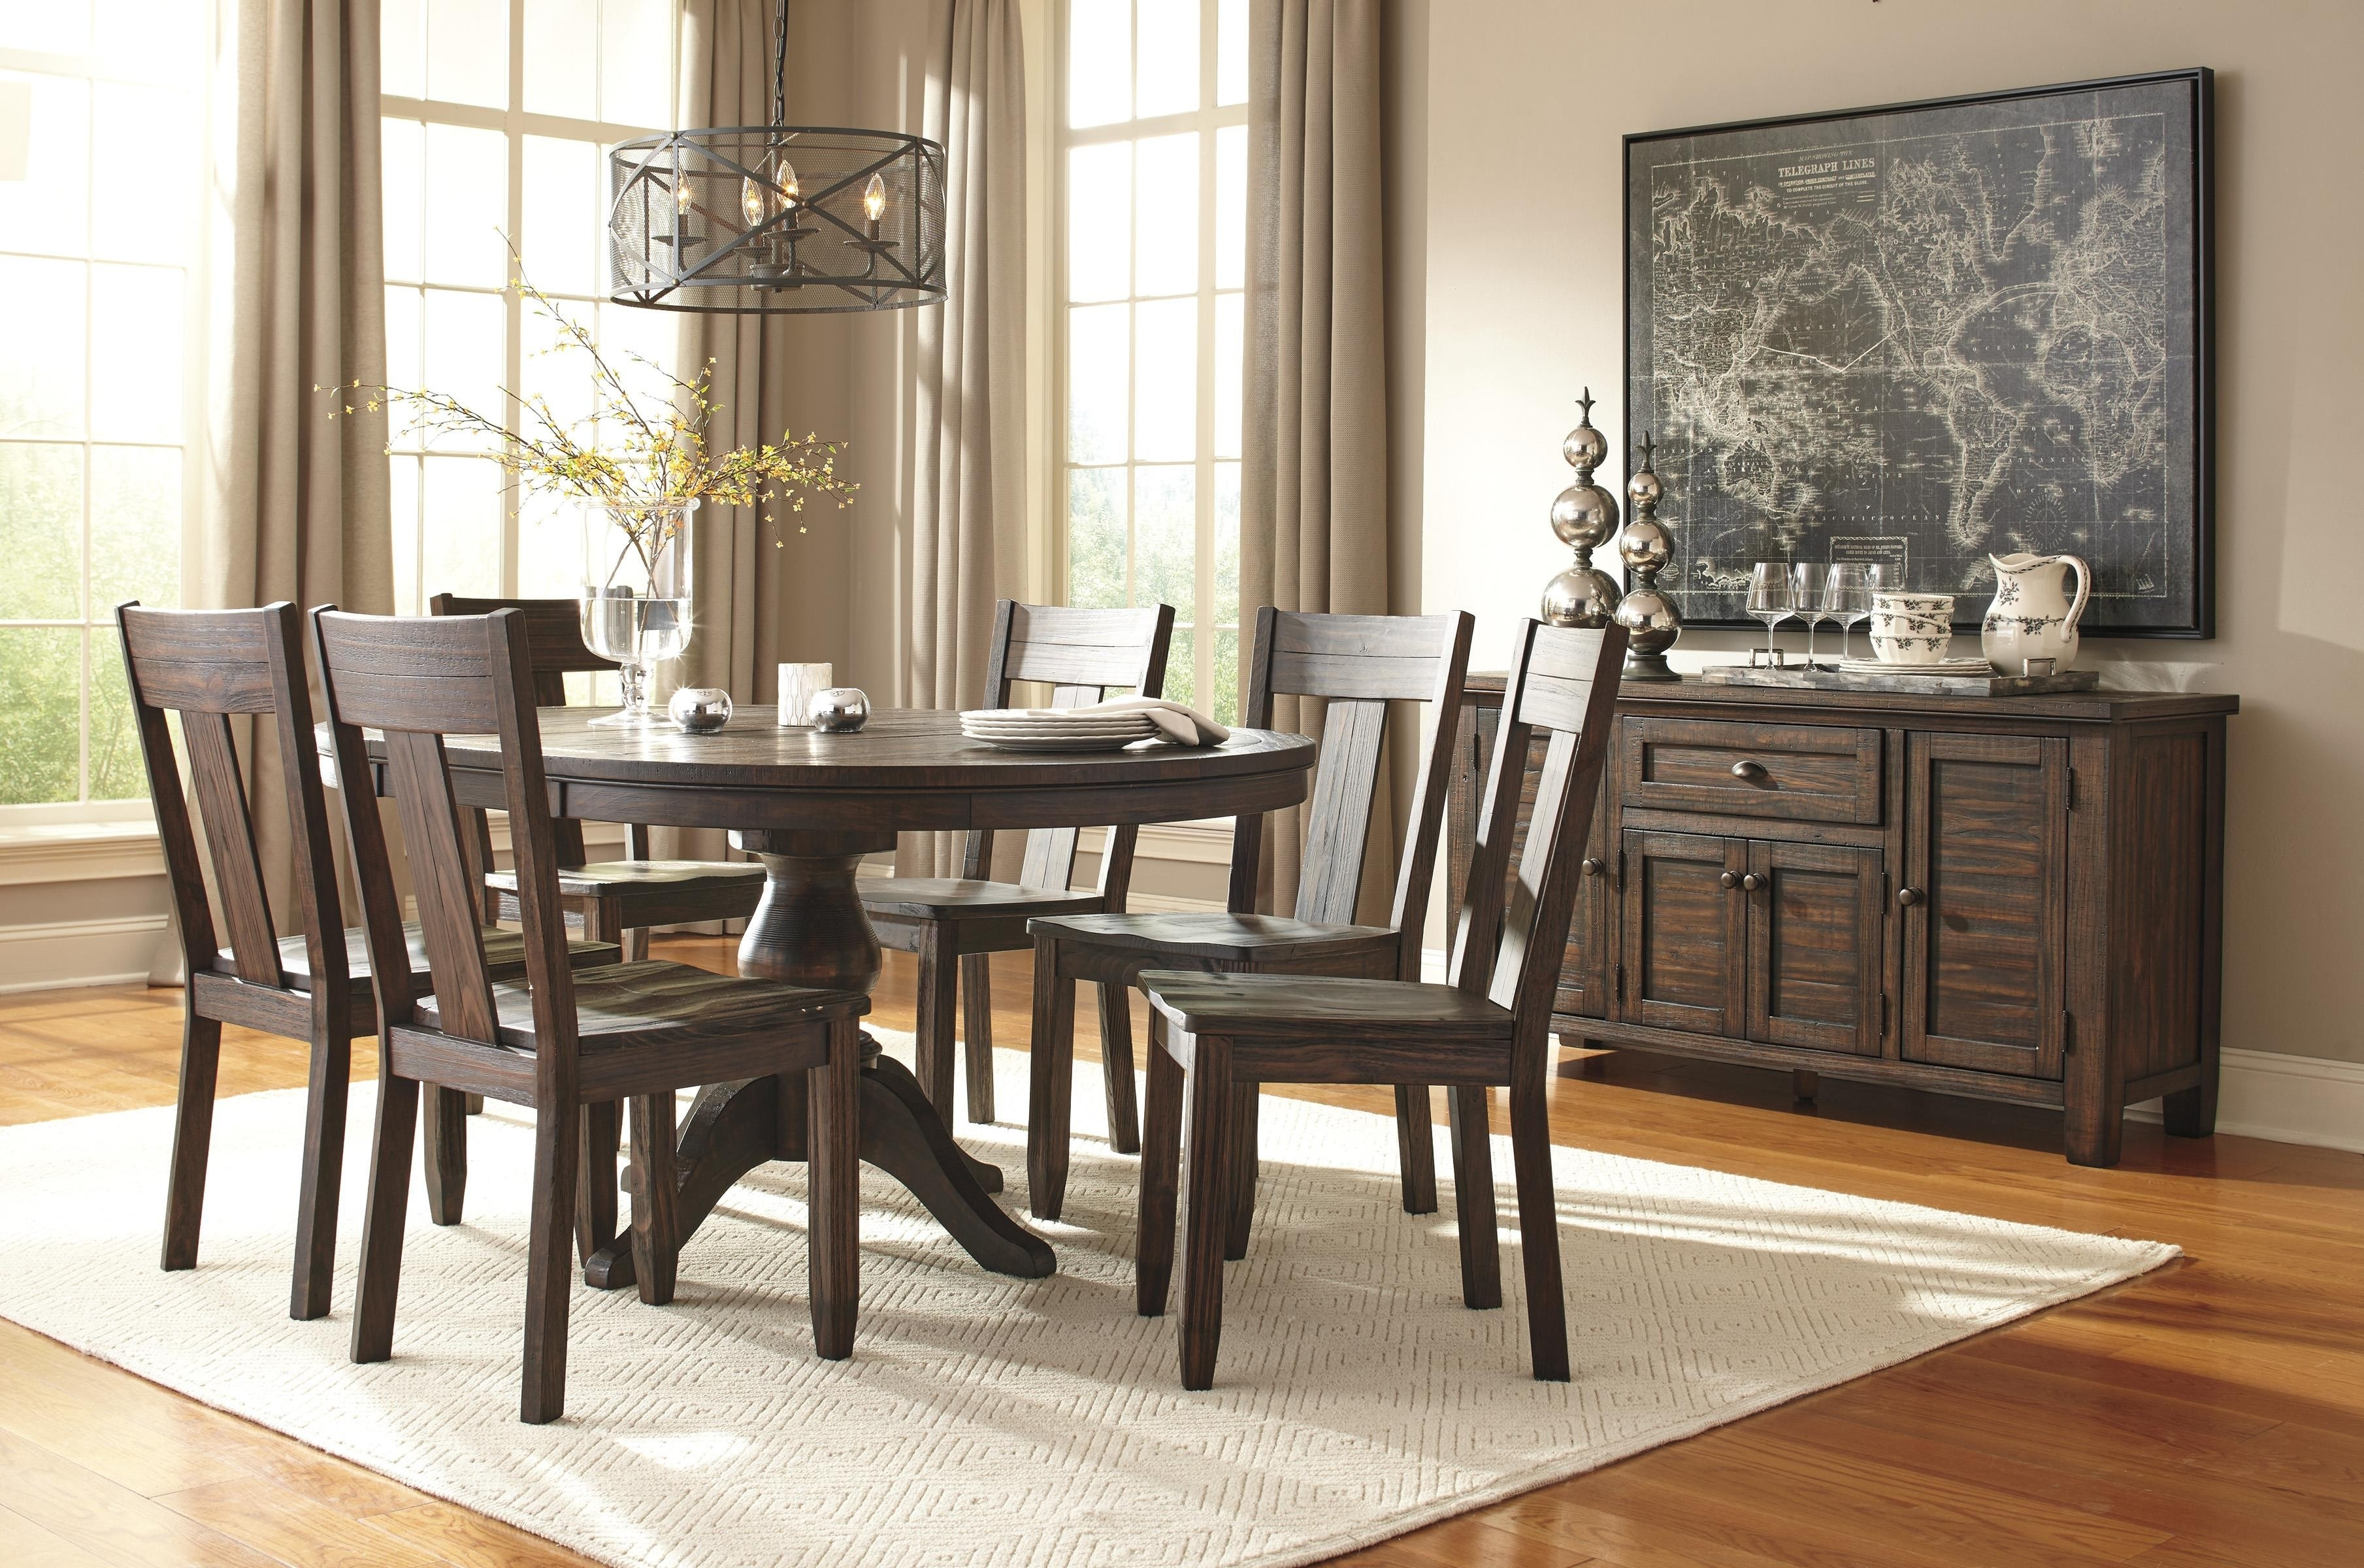 Tempting Table Piece Set Partridge Living Spaces Decor Table Piece Pertaining To Most Recent Partridge Dining Tables (Image 19 of 20)